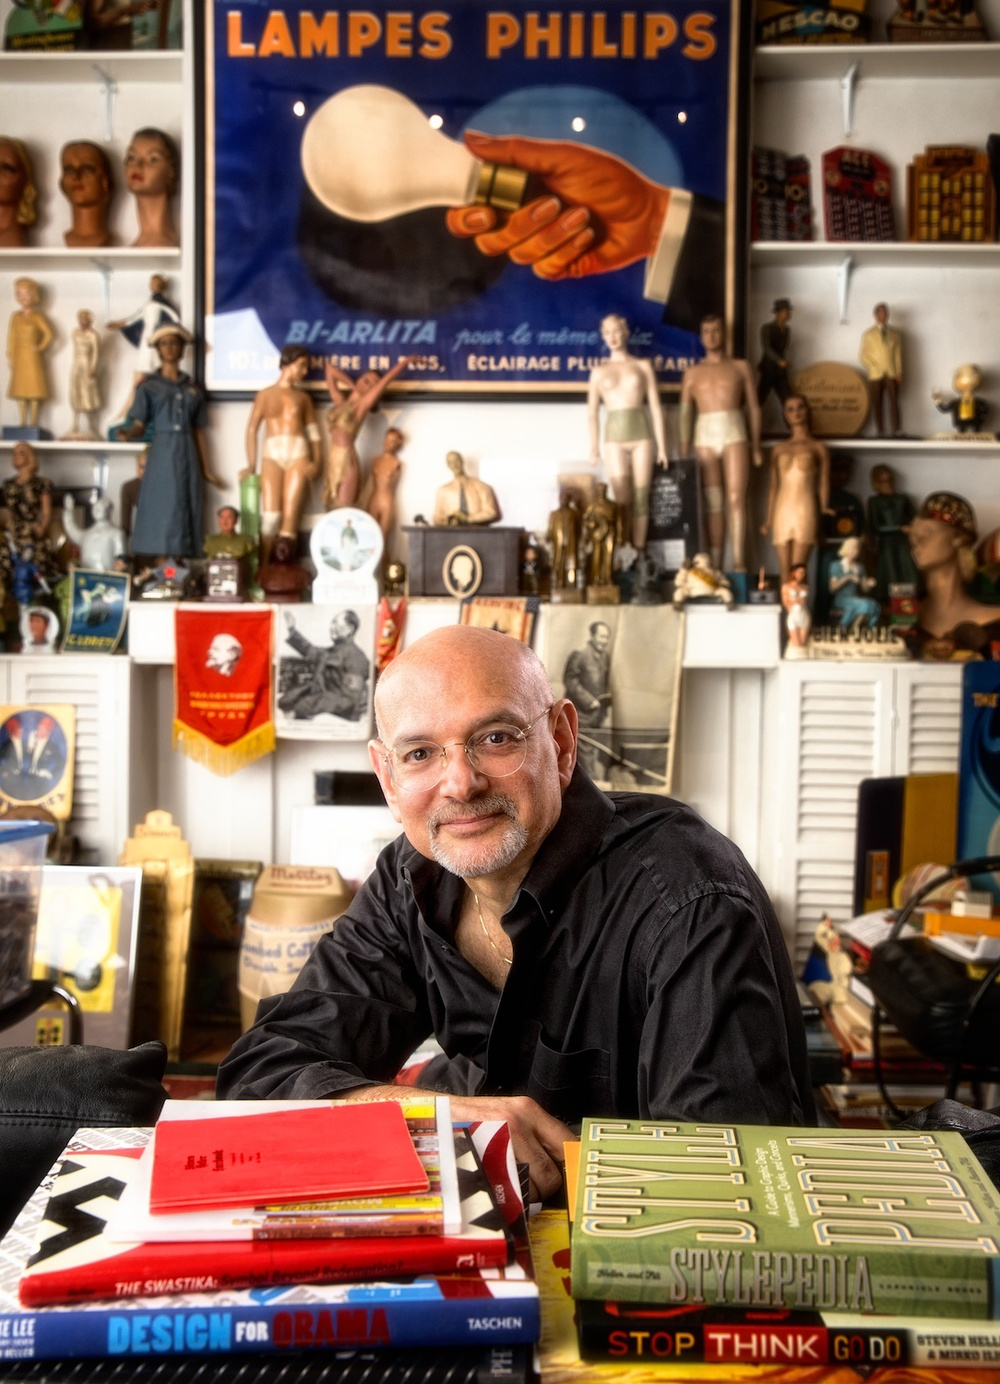 On a recent Saturday morning Steve Heller met me on the steps of his 16th Street studio in Manhattan. I was intent on photographing this icon of design amidst what proved to be the most intense personal collection of objects and books that I had ever seen.       Steve is the latest subject in my graphic designer portrait series. He was the noted art director of the New York Times Book Review for 33 years. He has authored and co-authored over 100 books on design and popular culture. He is a fascinating subject whose charm and accomplishments would be difficult to convey in a single photograph.      My biggest challenge was finding a place to put my camera and tripod. I wedged myself into a tiny space between teetering towers of rare books and objects, terrified that I could knock something over and start an avalanche. (Click on photo to enlarge)